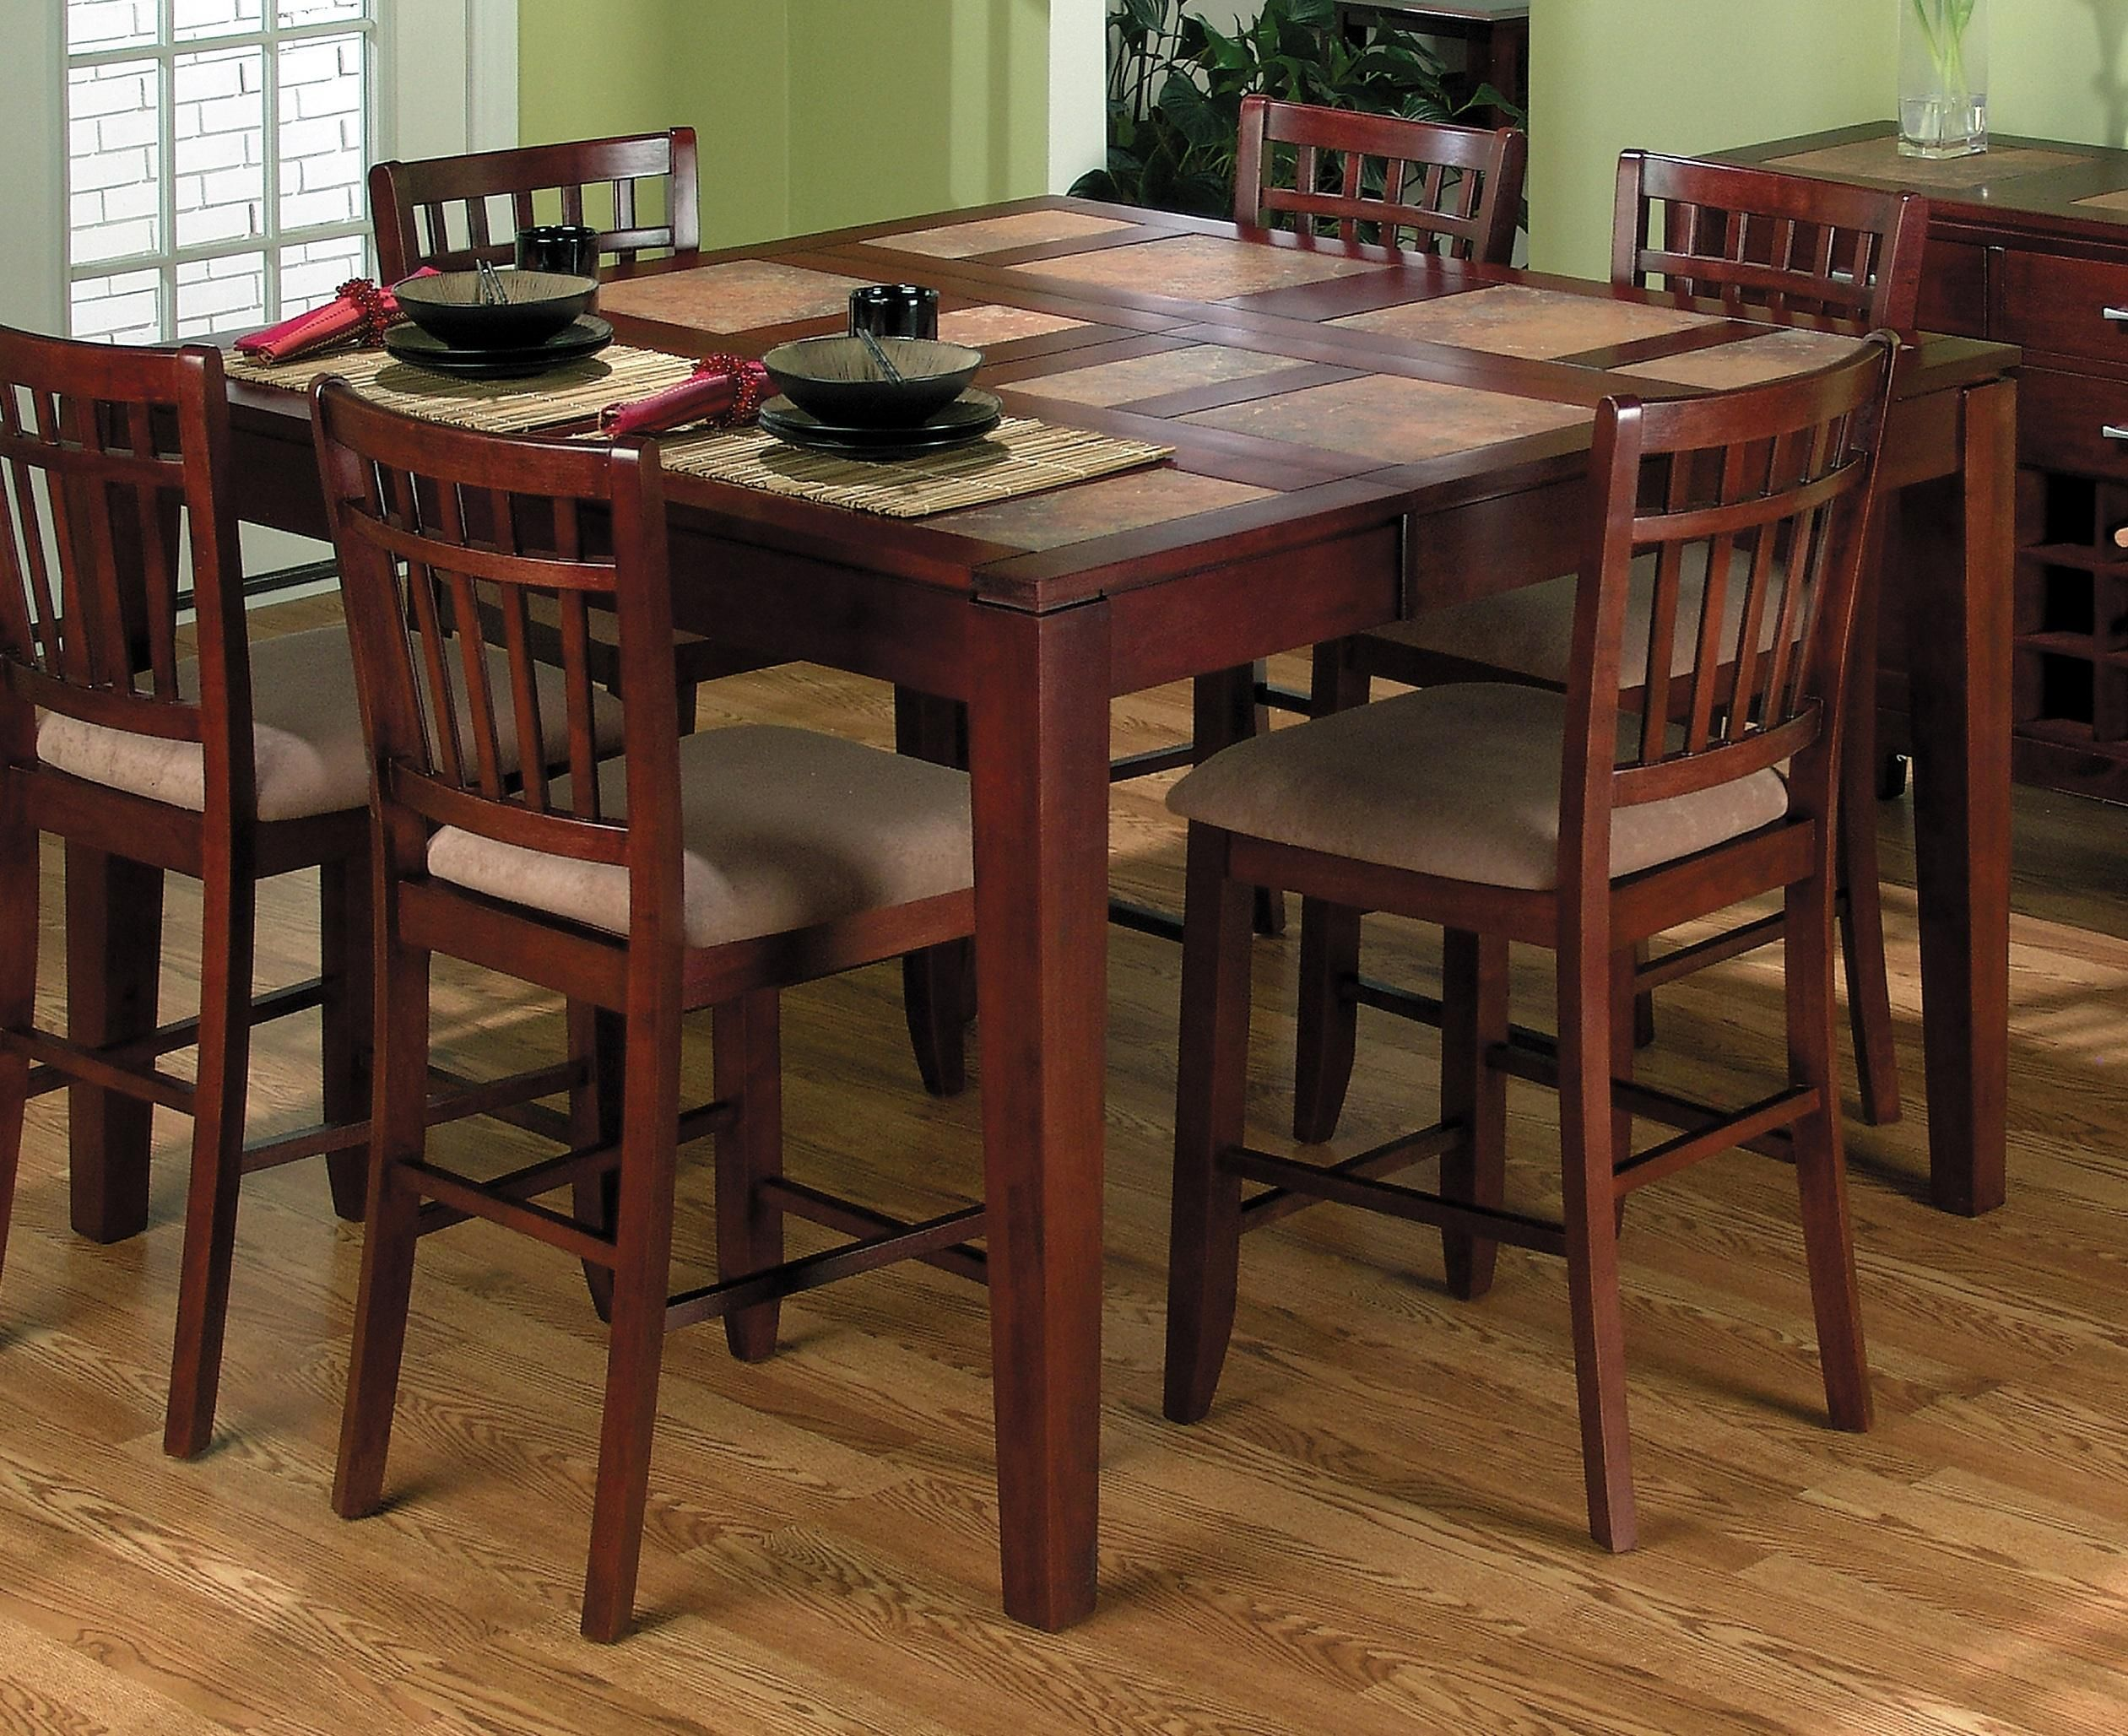 Small Dinette Set Design High Top Dining Table Kitchen Table Settings Square Kitchen Tables